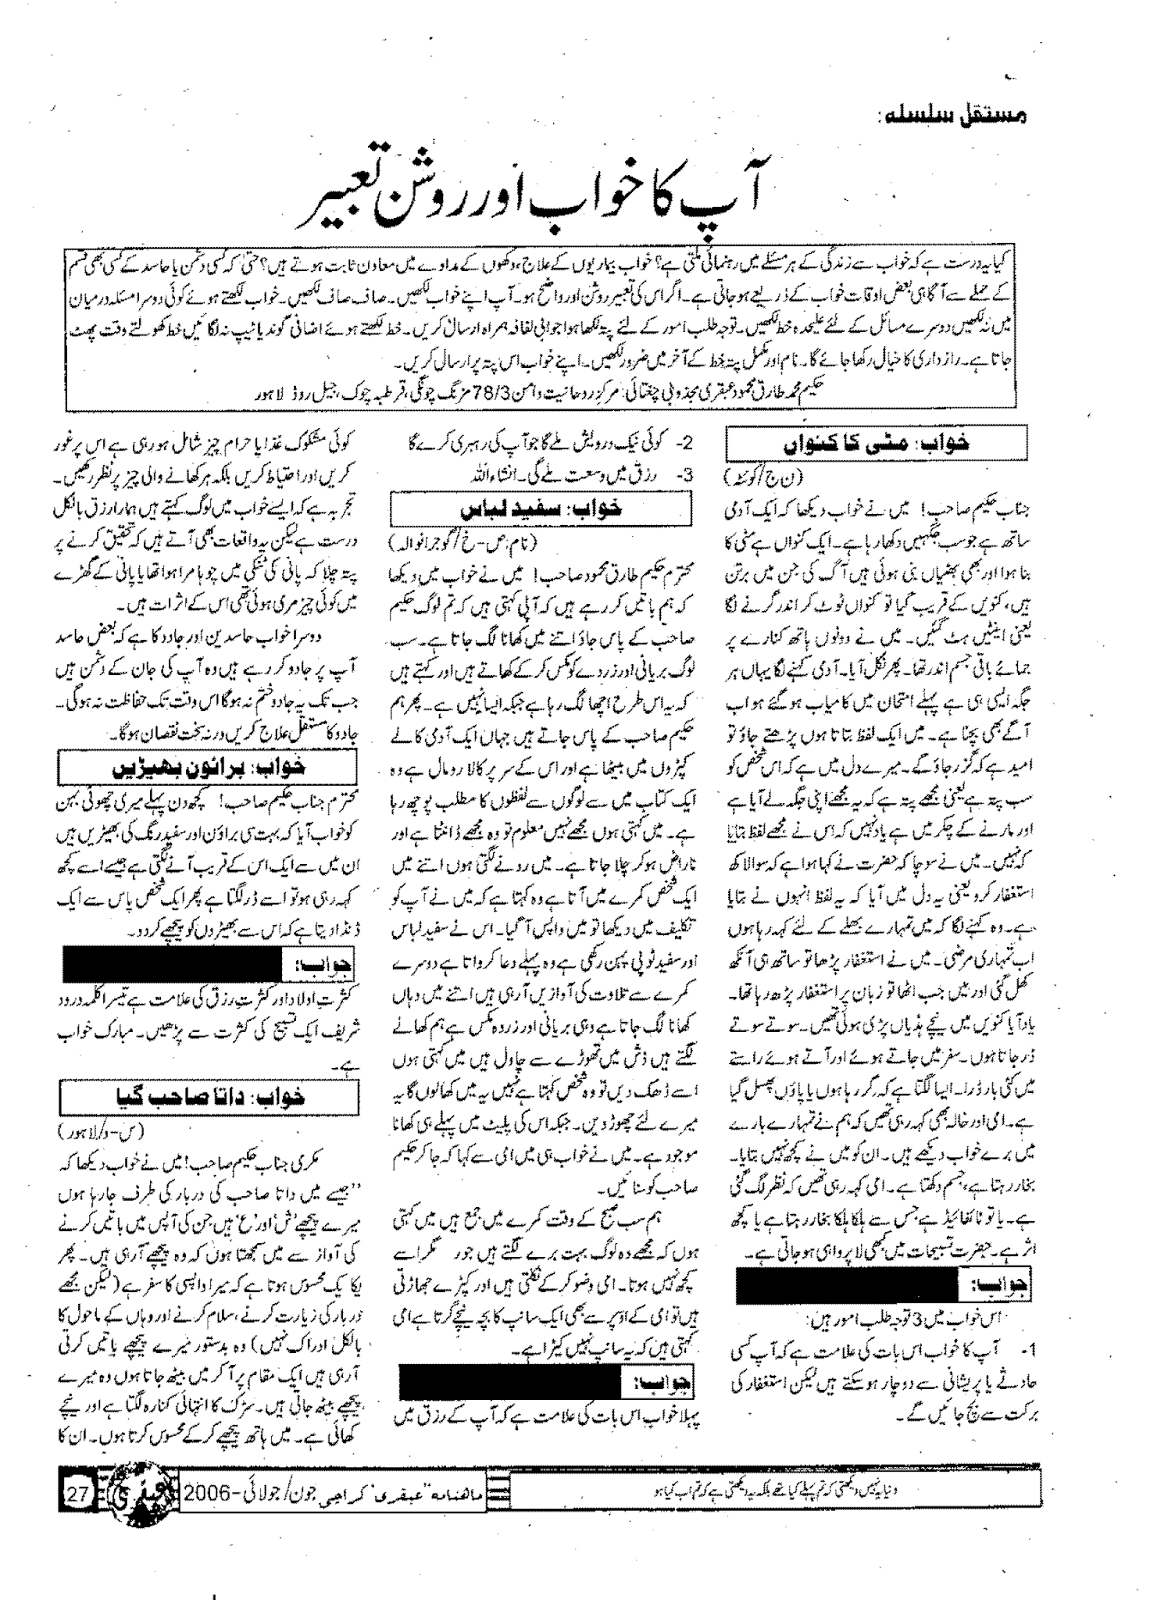 june july 2006 ubqari magazine page 27